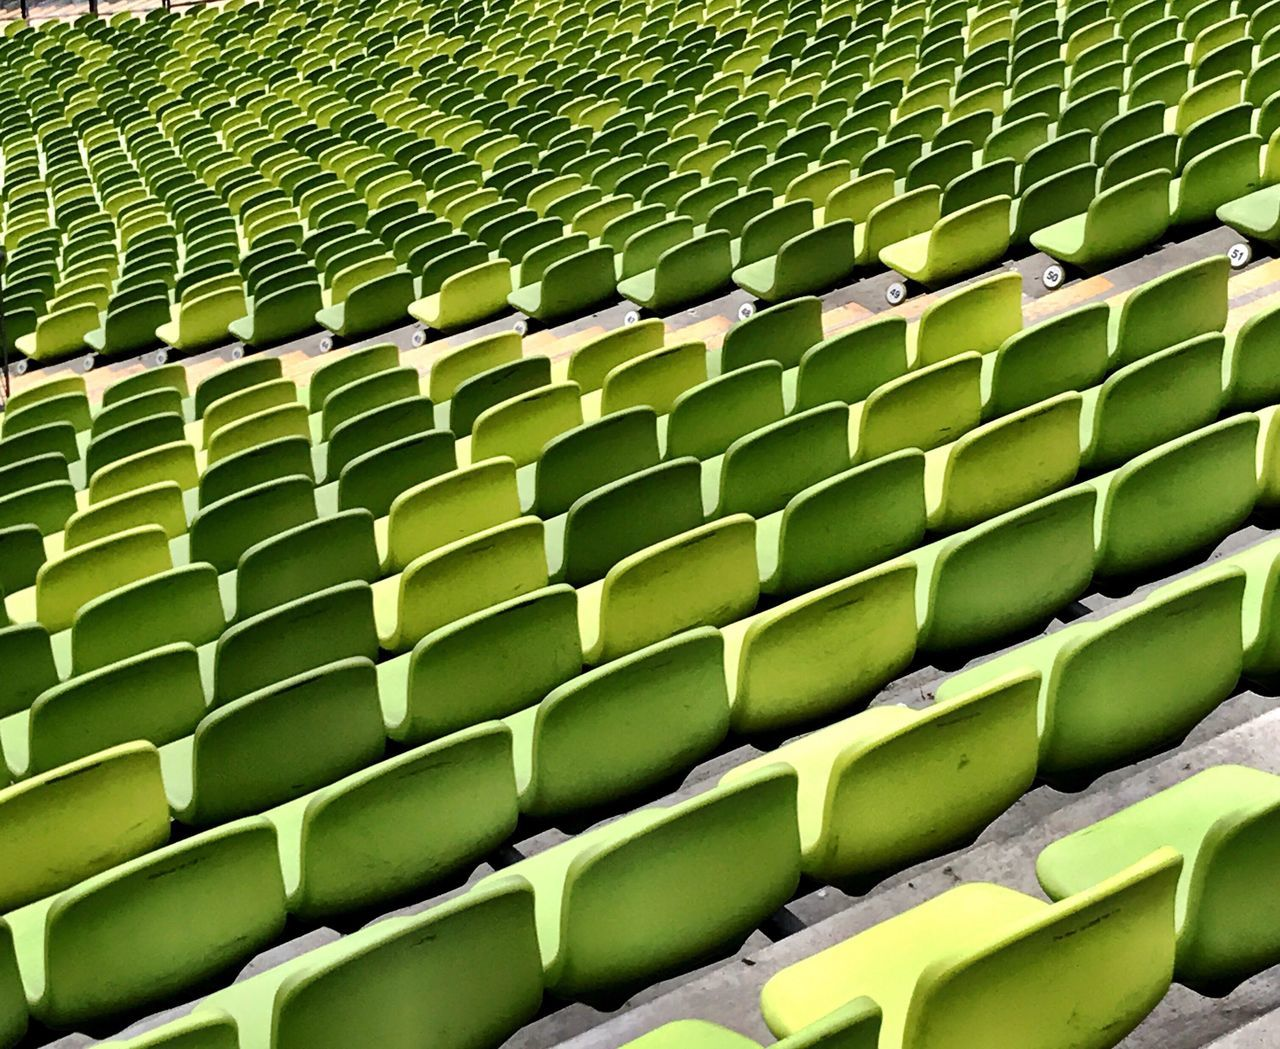 green color, in a row, abundance, indoors, no people, full frame, large group of objects, stadium, auditorium, day, close-up